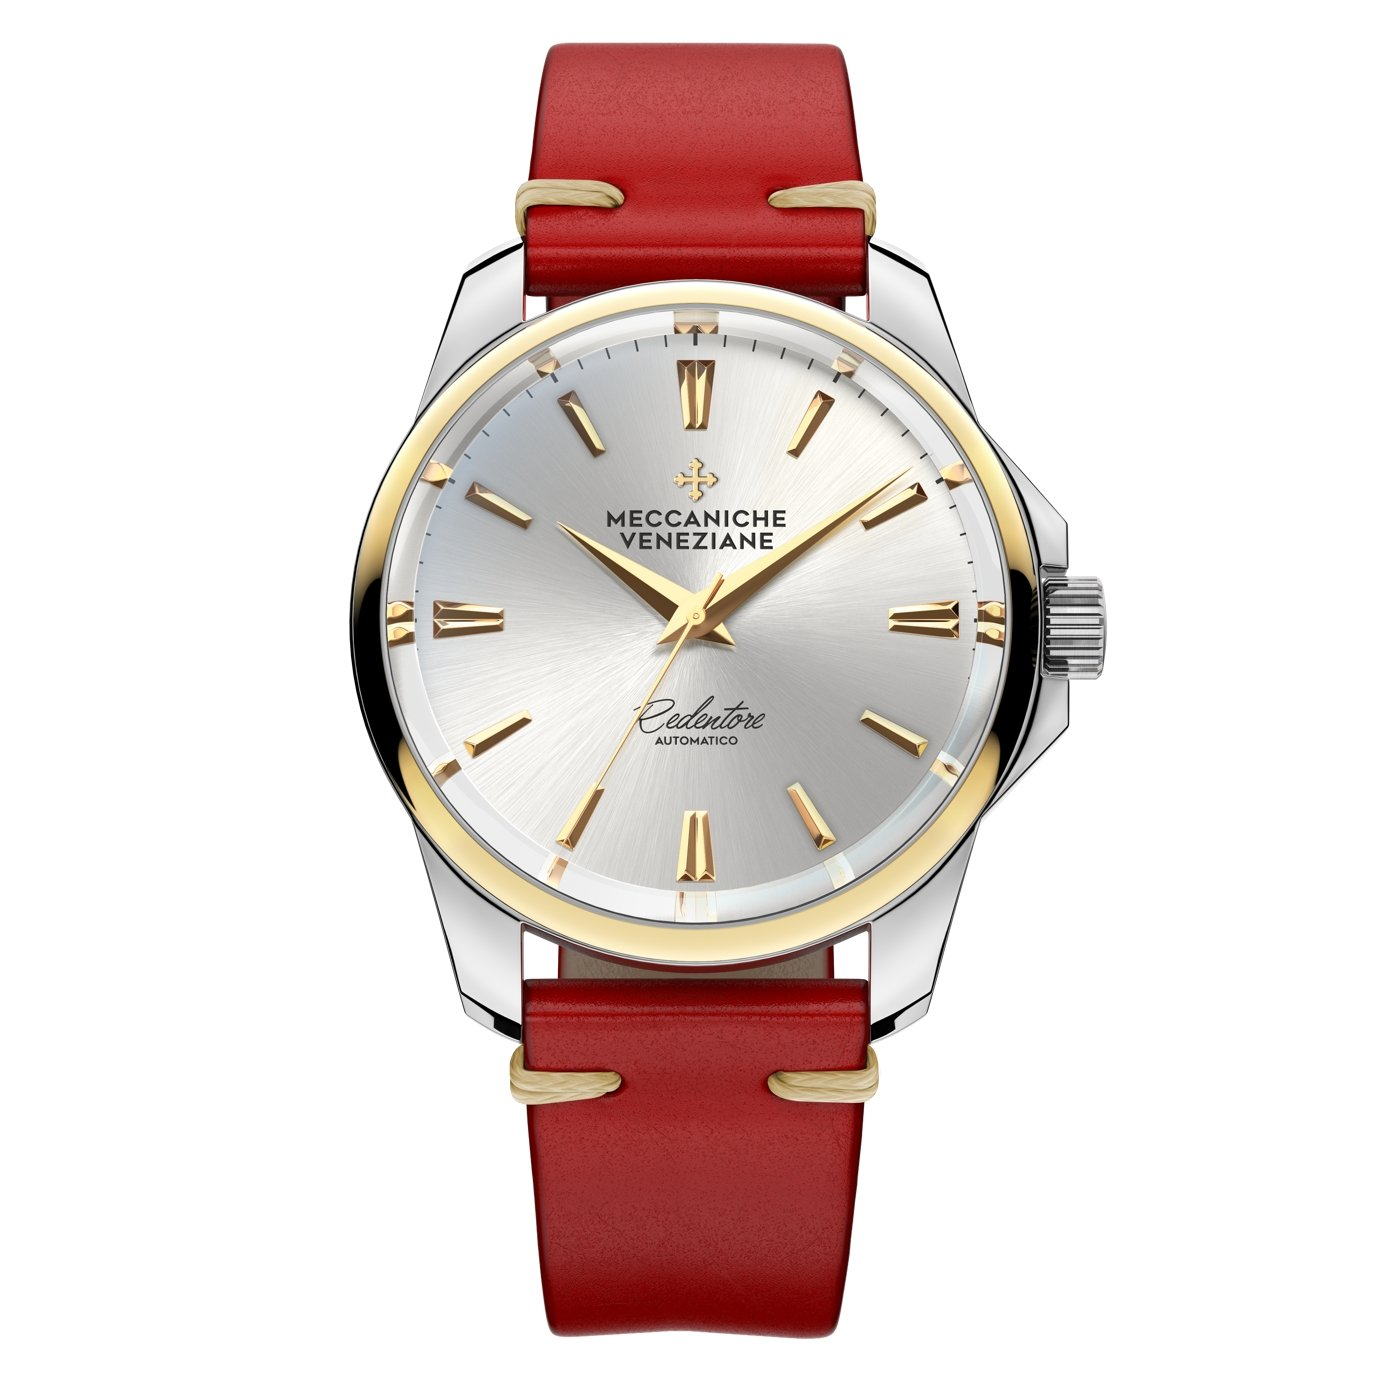 Meccaniche Veneziane Redentore 36 Red - Watches & Crystals